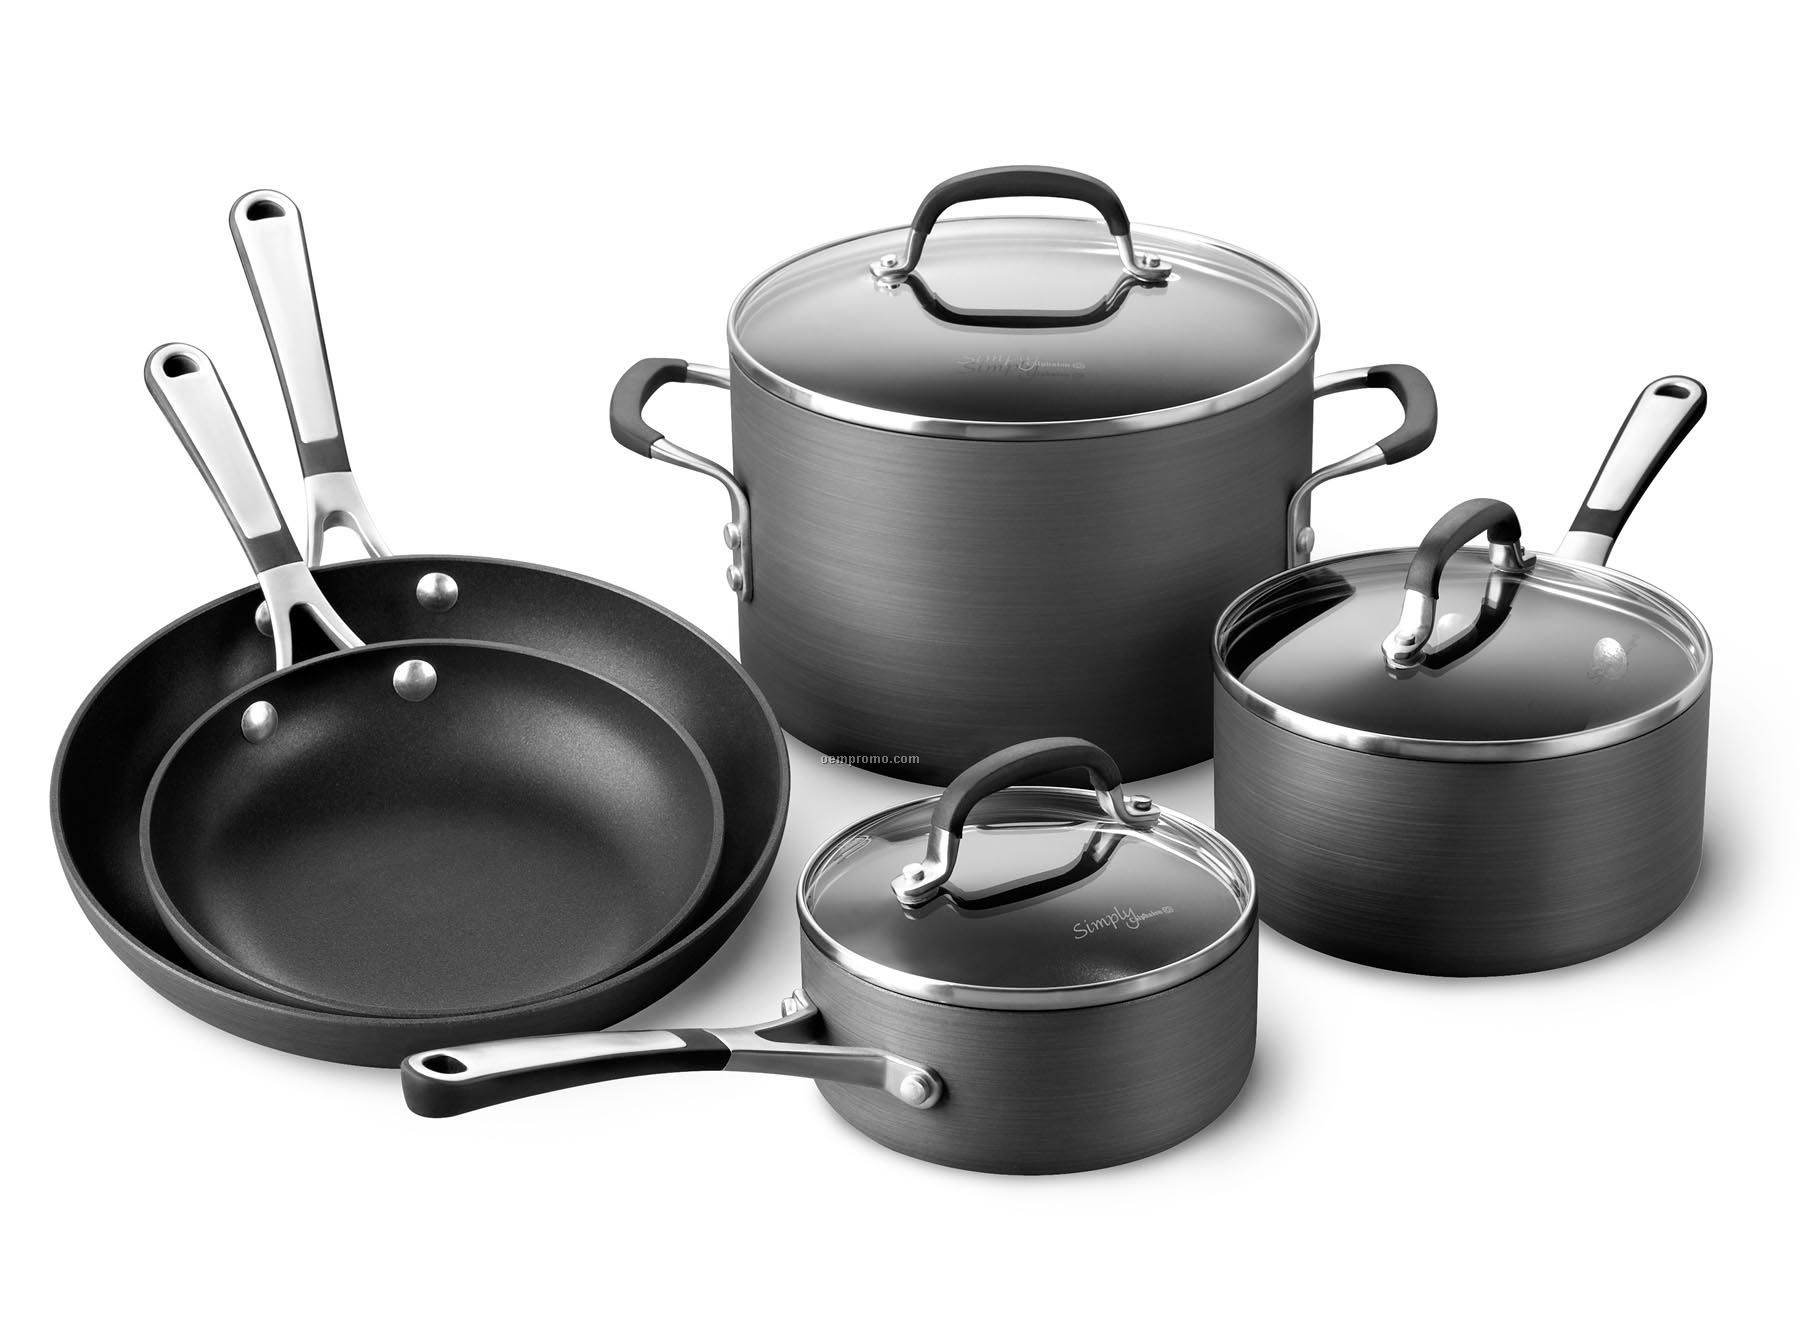 Calphalon 8 Piece Simply Calphalon Nonstick Cookware China